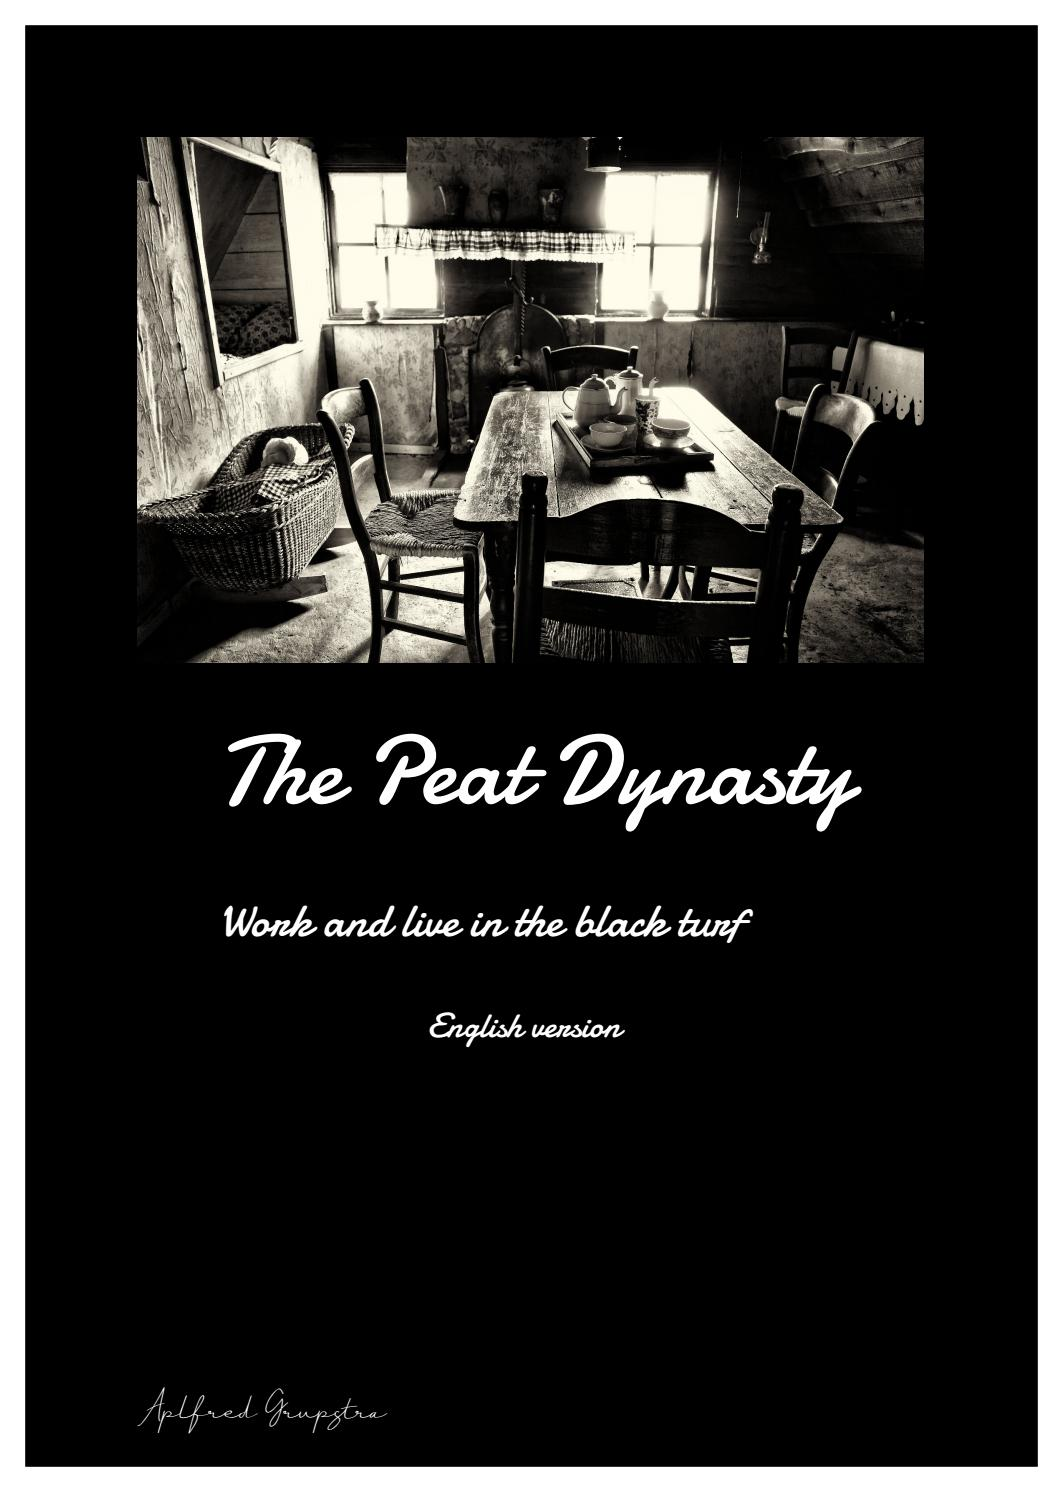 The Peat Dynasty